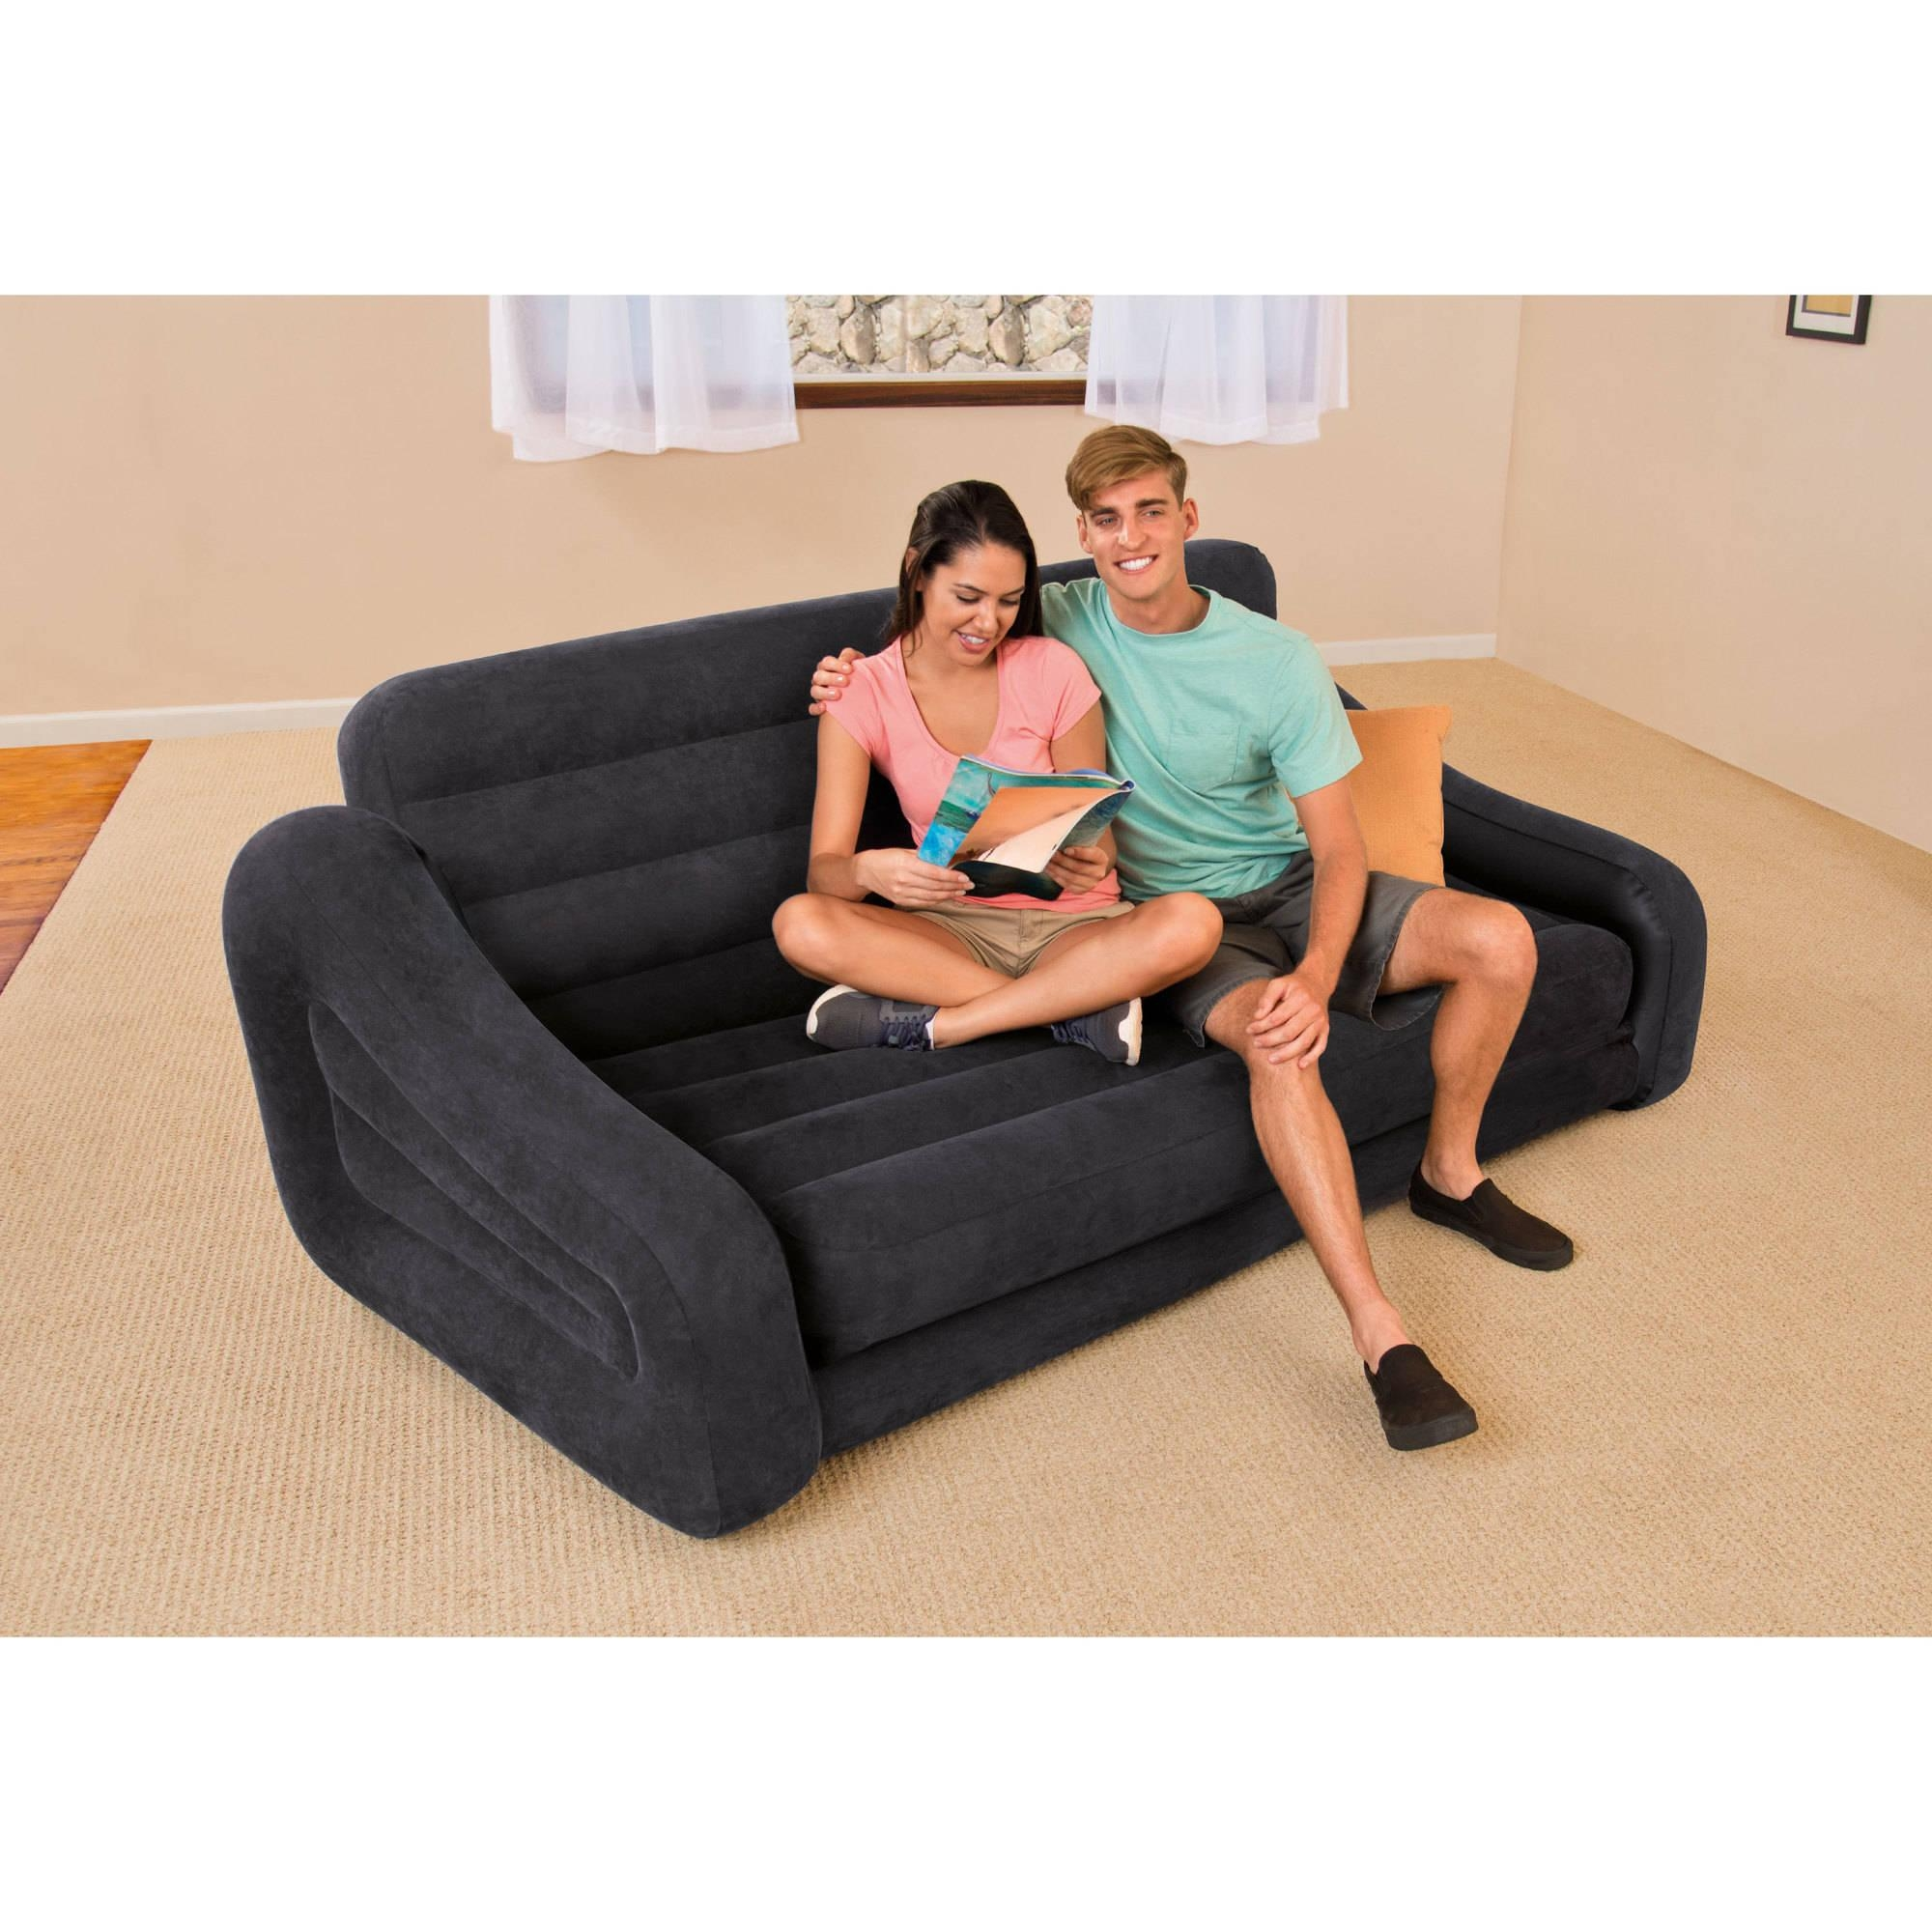 queen size pull out sleeper sofa sofascore barcelona vs chelsea 20 collection of bed sofas ideas